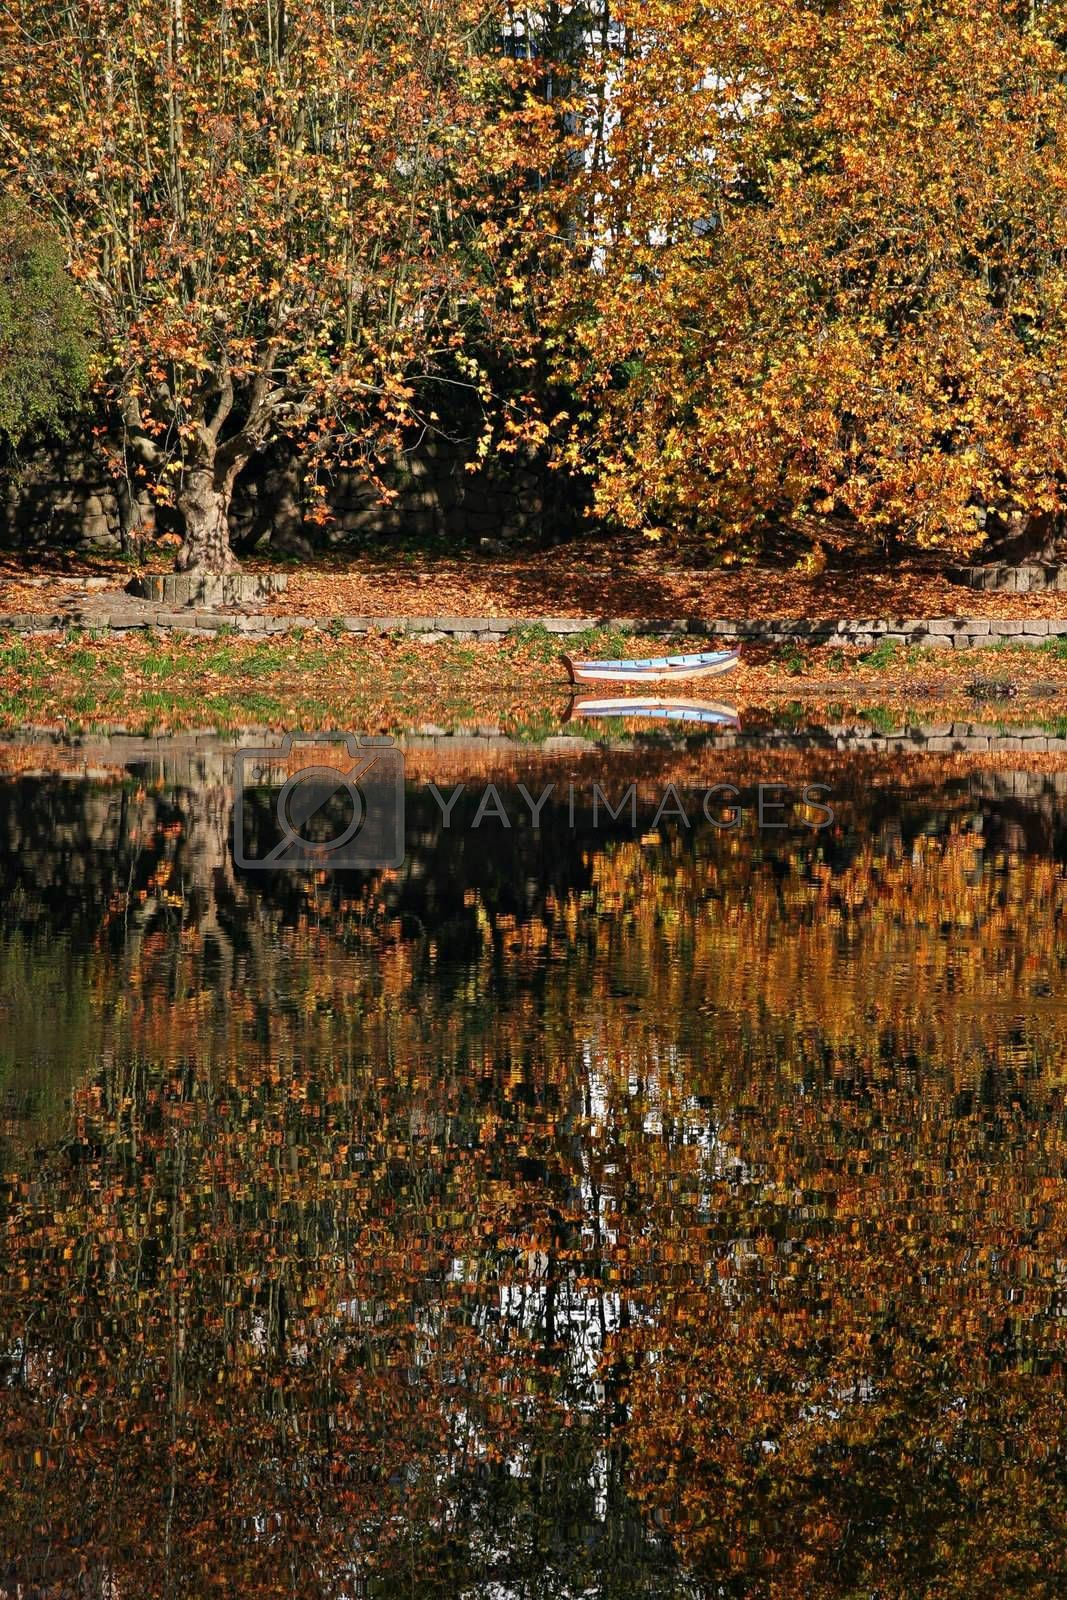 Royalty free image of autumn scene by ajn